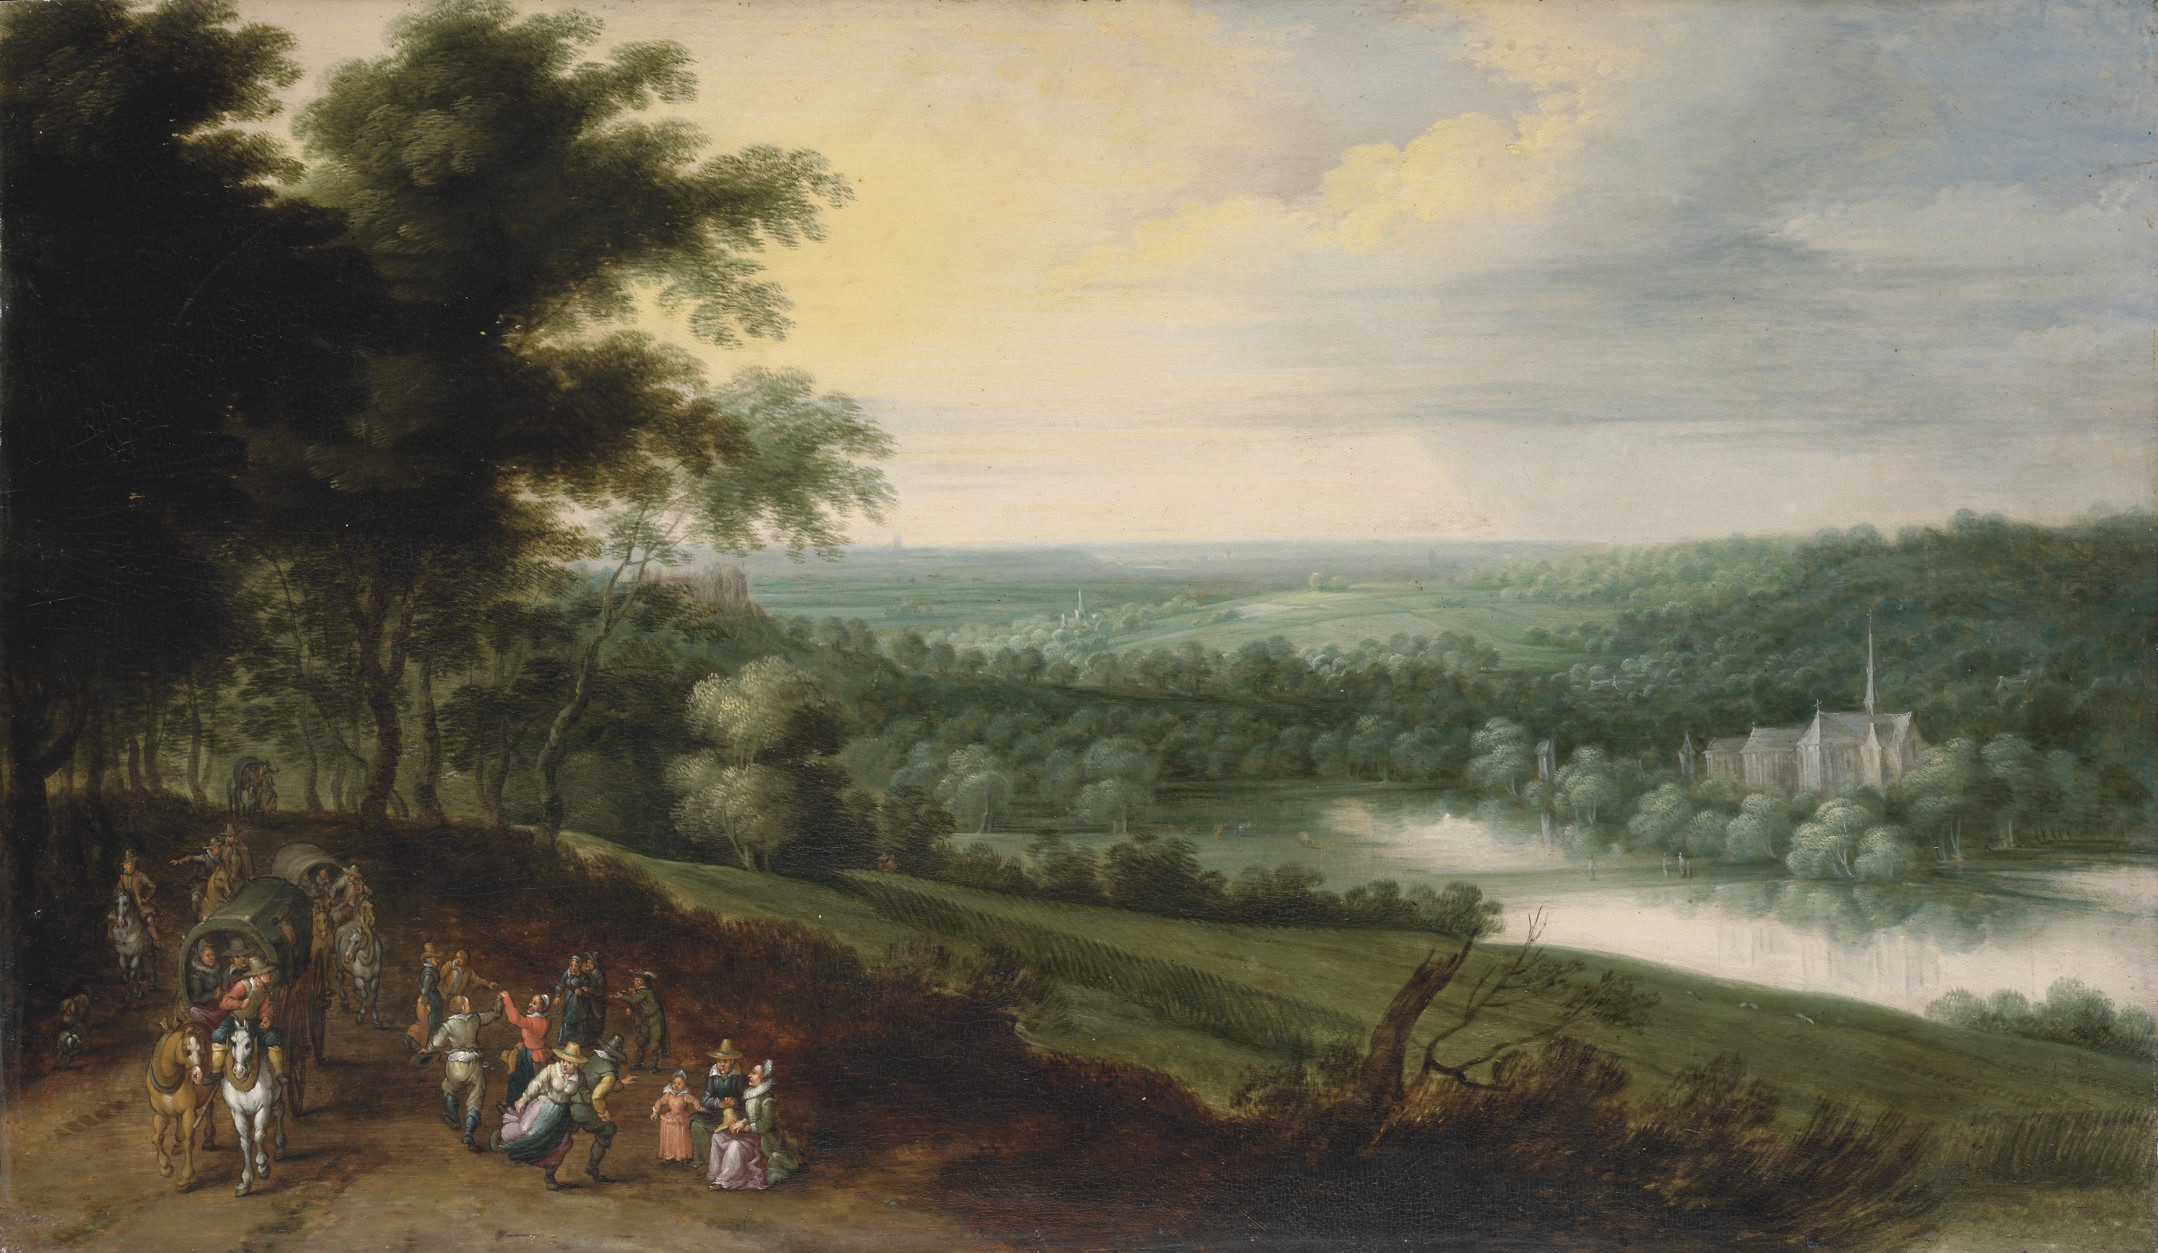 A landscape with figures and waggons on a path